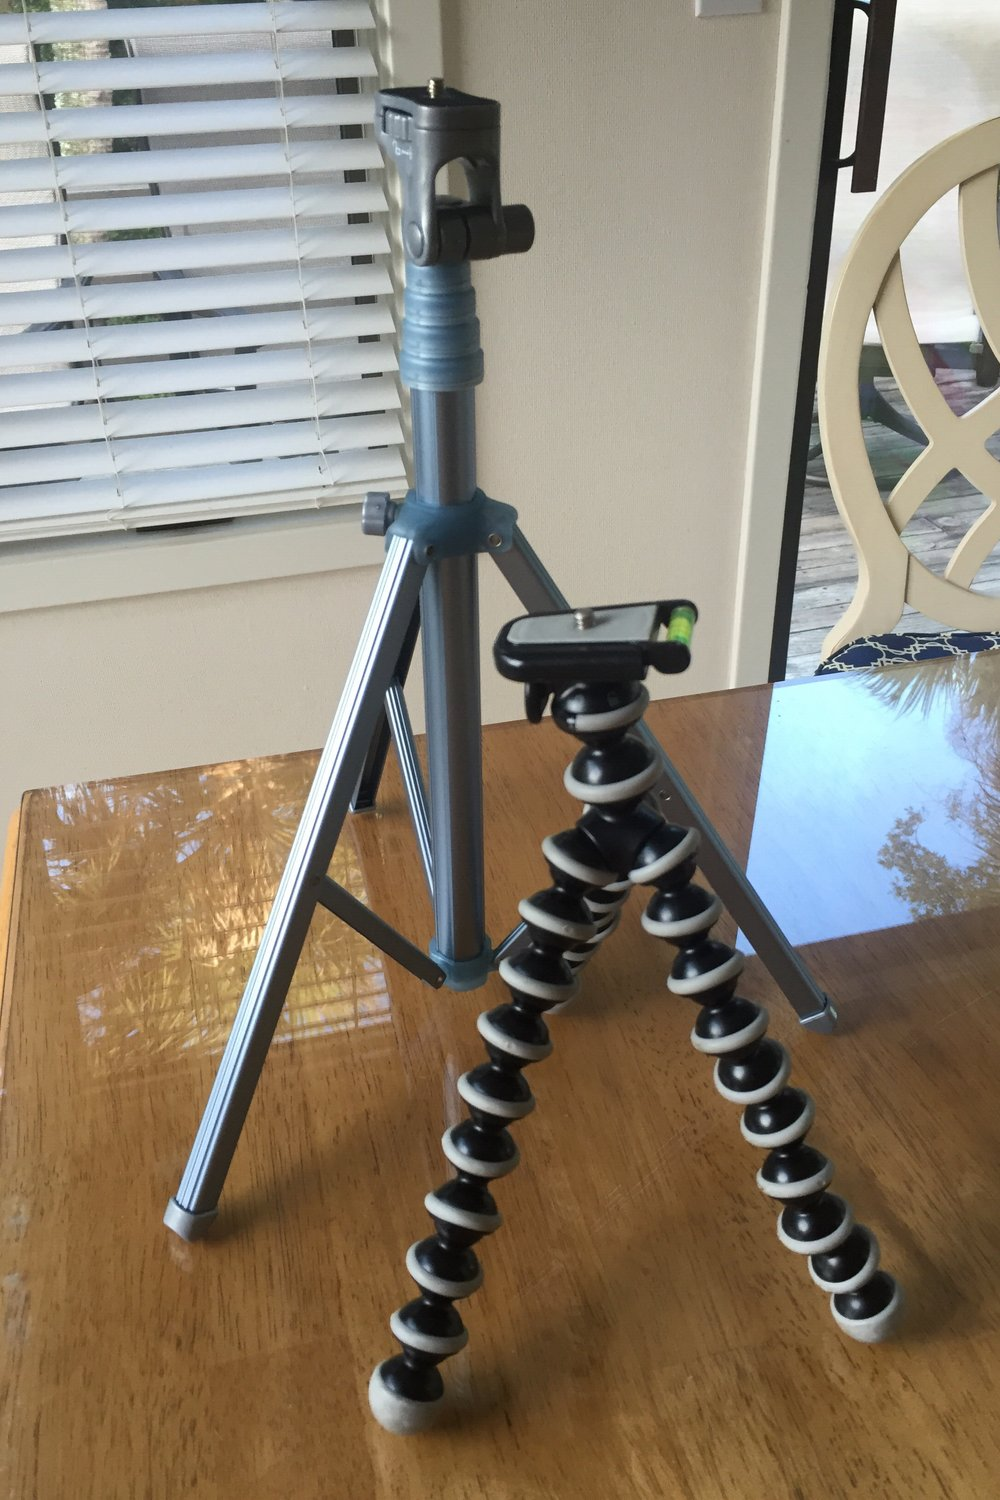 The LolliPod and Joby dSLR GorillaPod